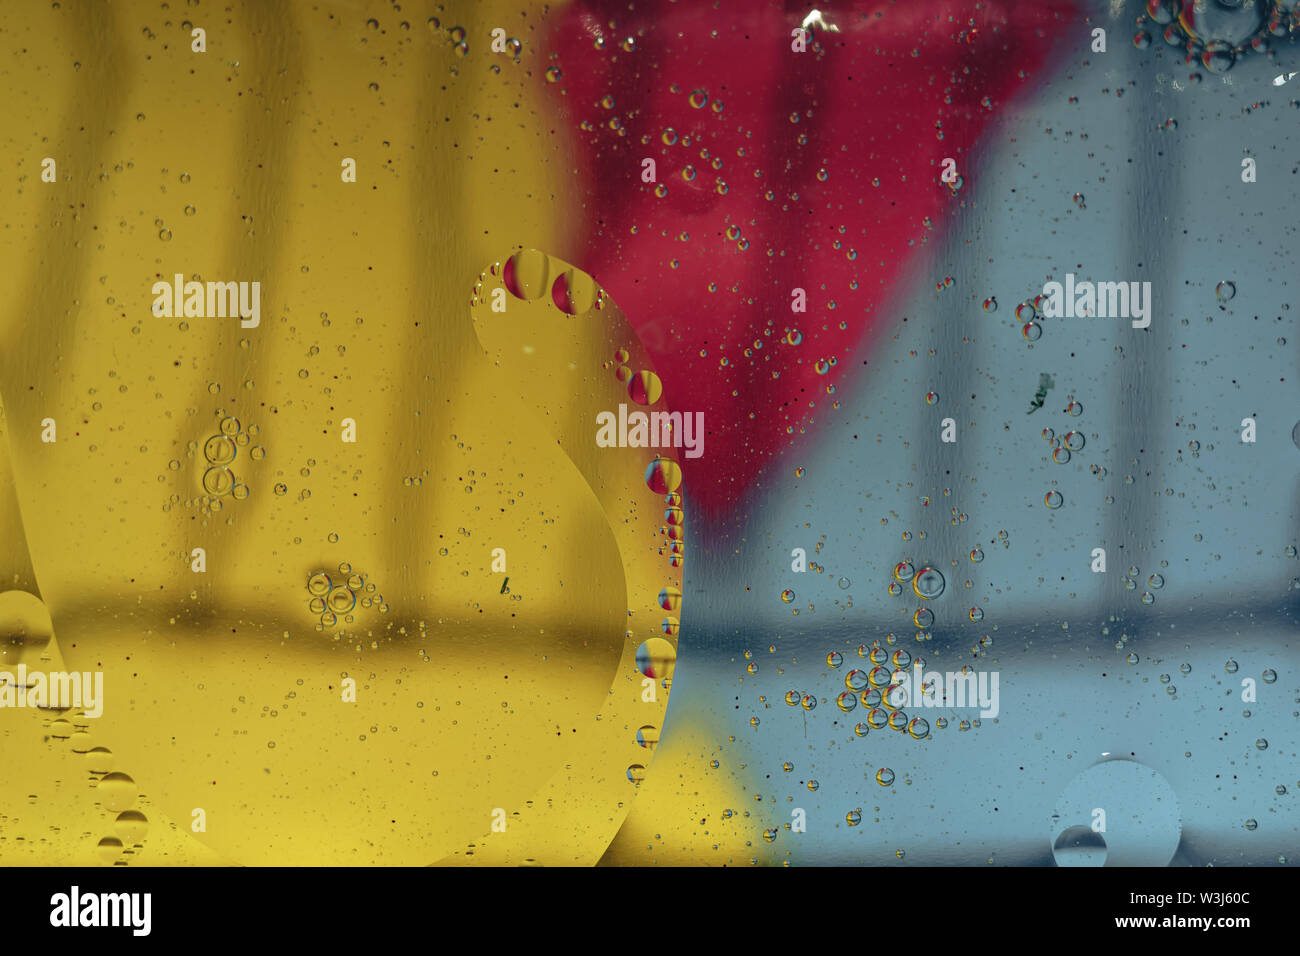 Beautiful color yellow, blue and pinkabstraction background close up. - Stock Image